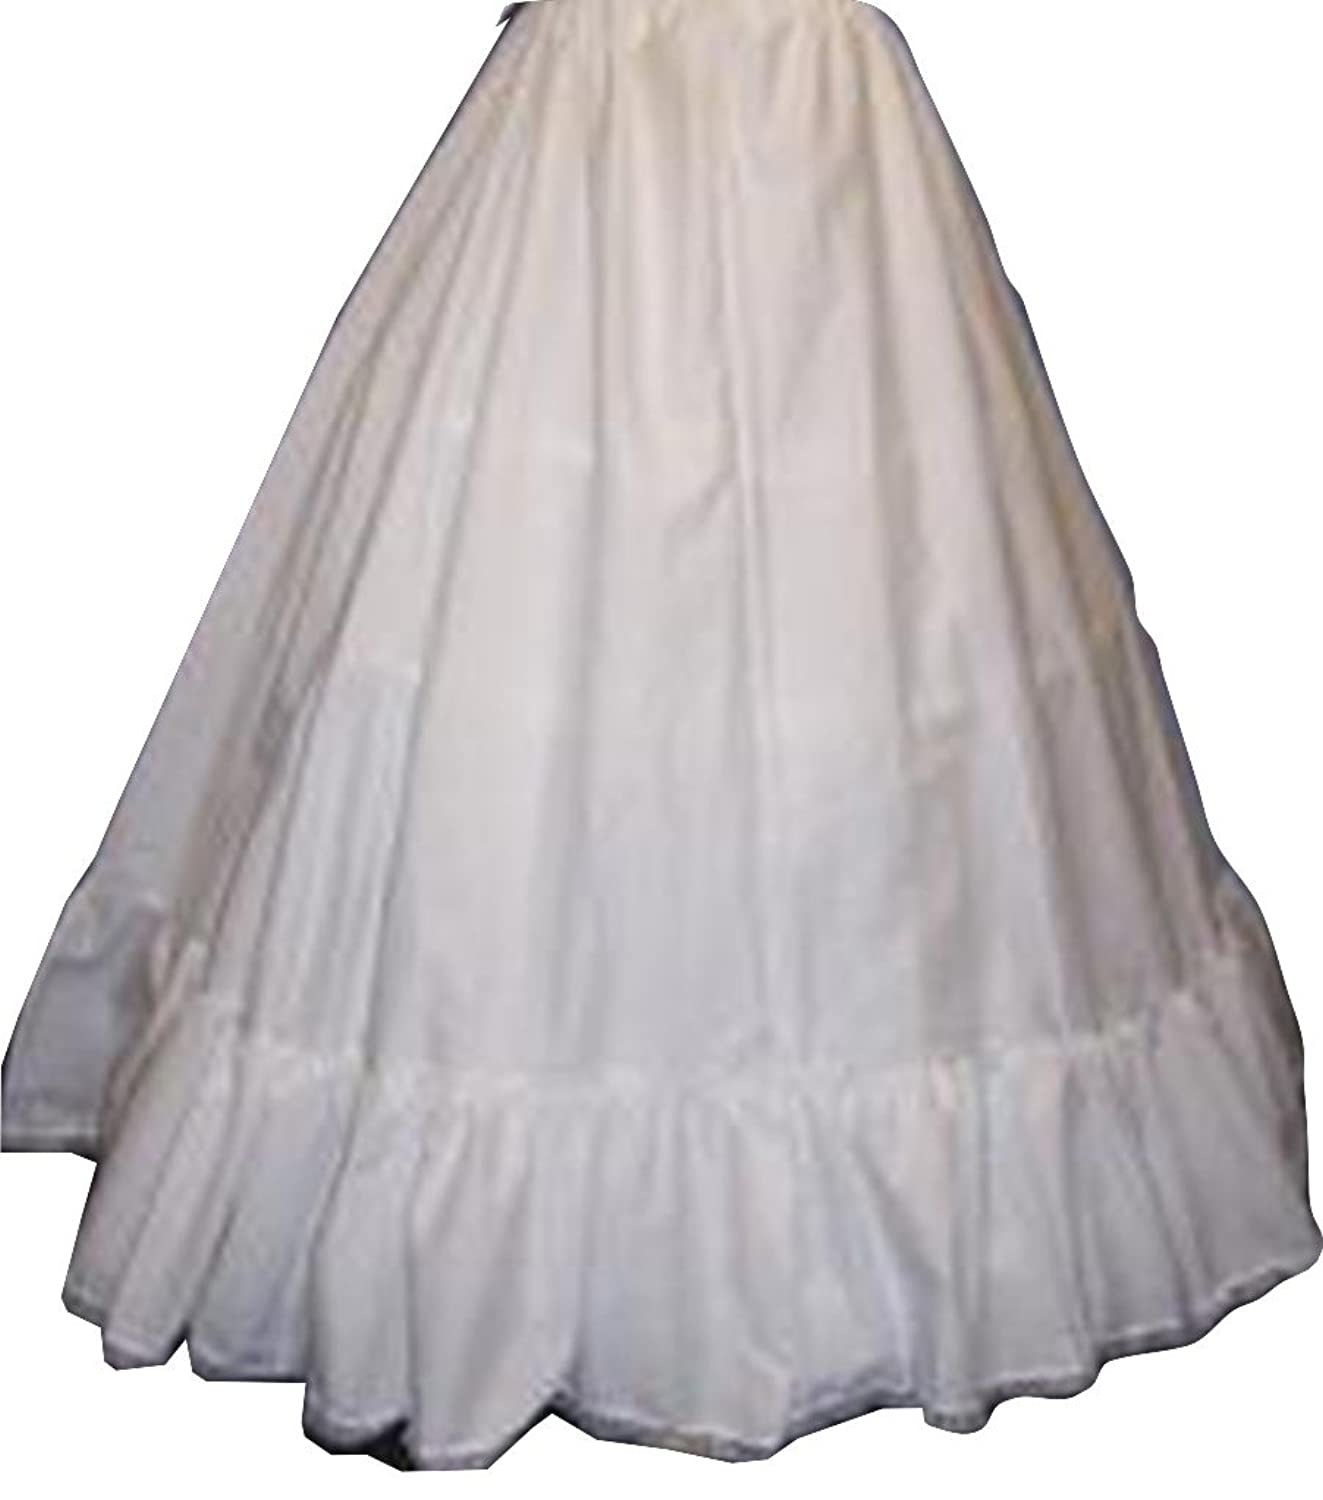 Vintage Inspired Wedding Accessories XL- Hoop Slip Skirt Cotton Cover Over Skirt Civil War Wear (102DSC-C) $40.00 AT vintagedancer.com